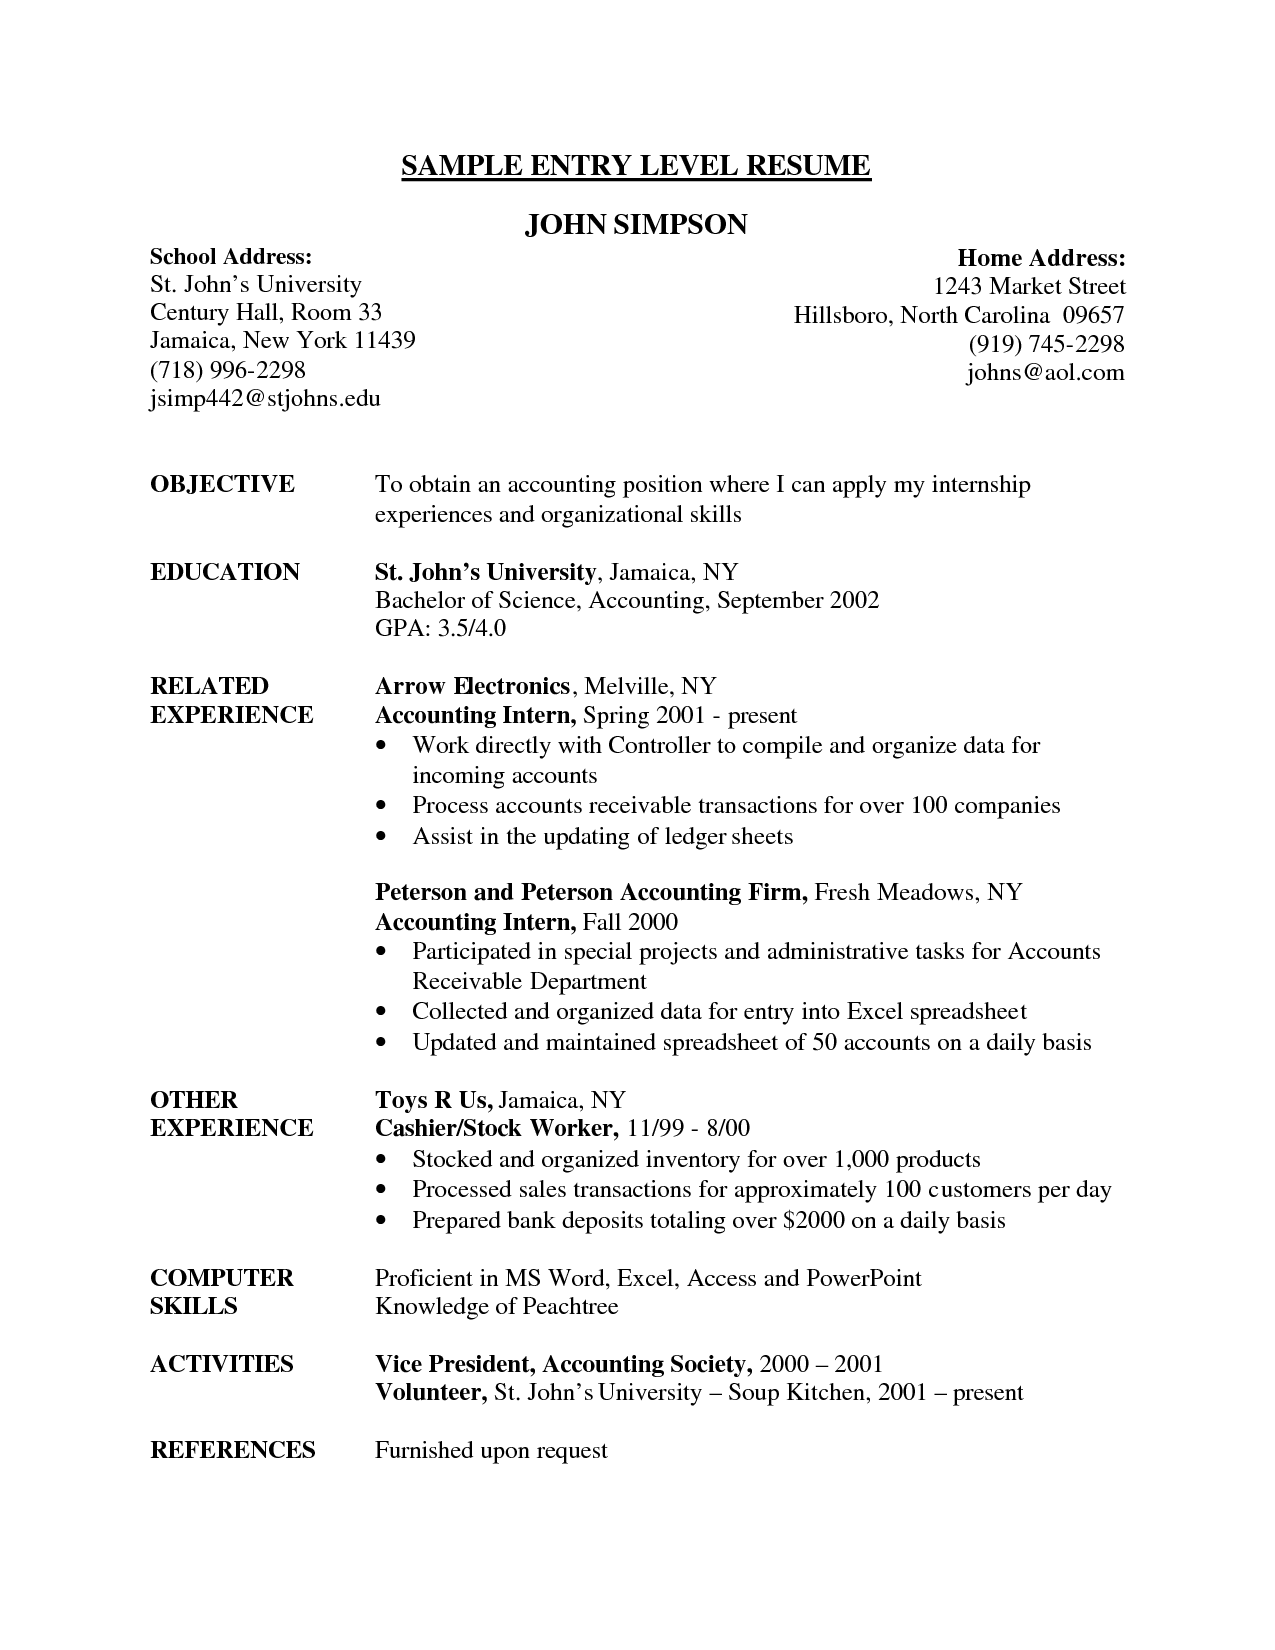 Example Of Resume Profile Entry Level   Http://www.resumecareer.info  Entry Level Marketing Resumes